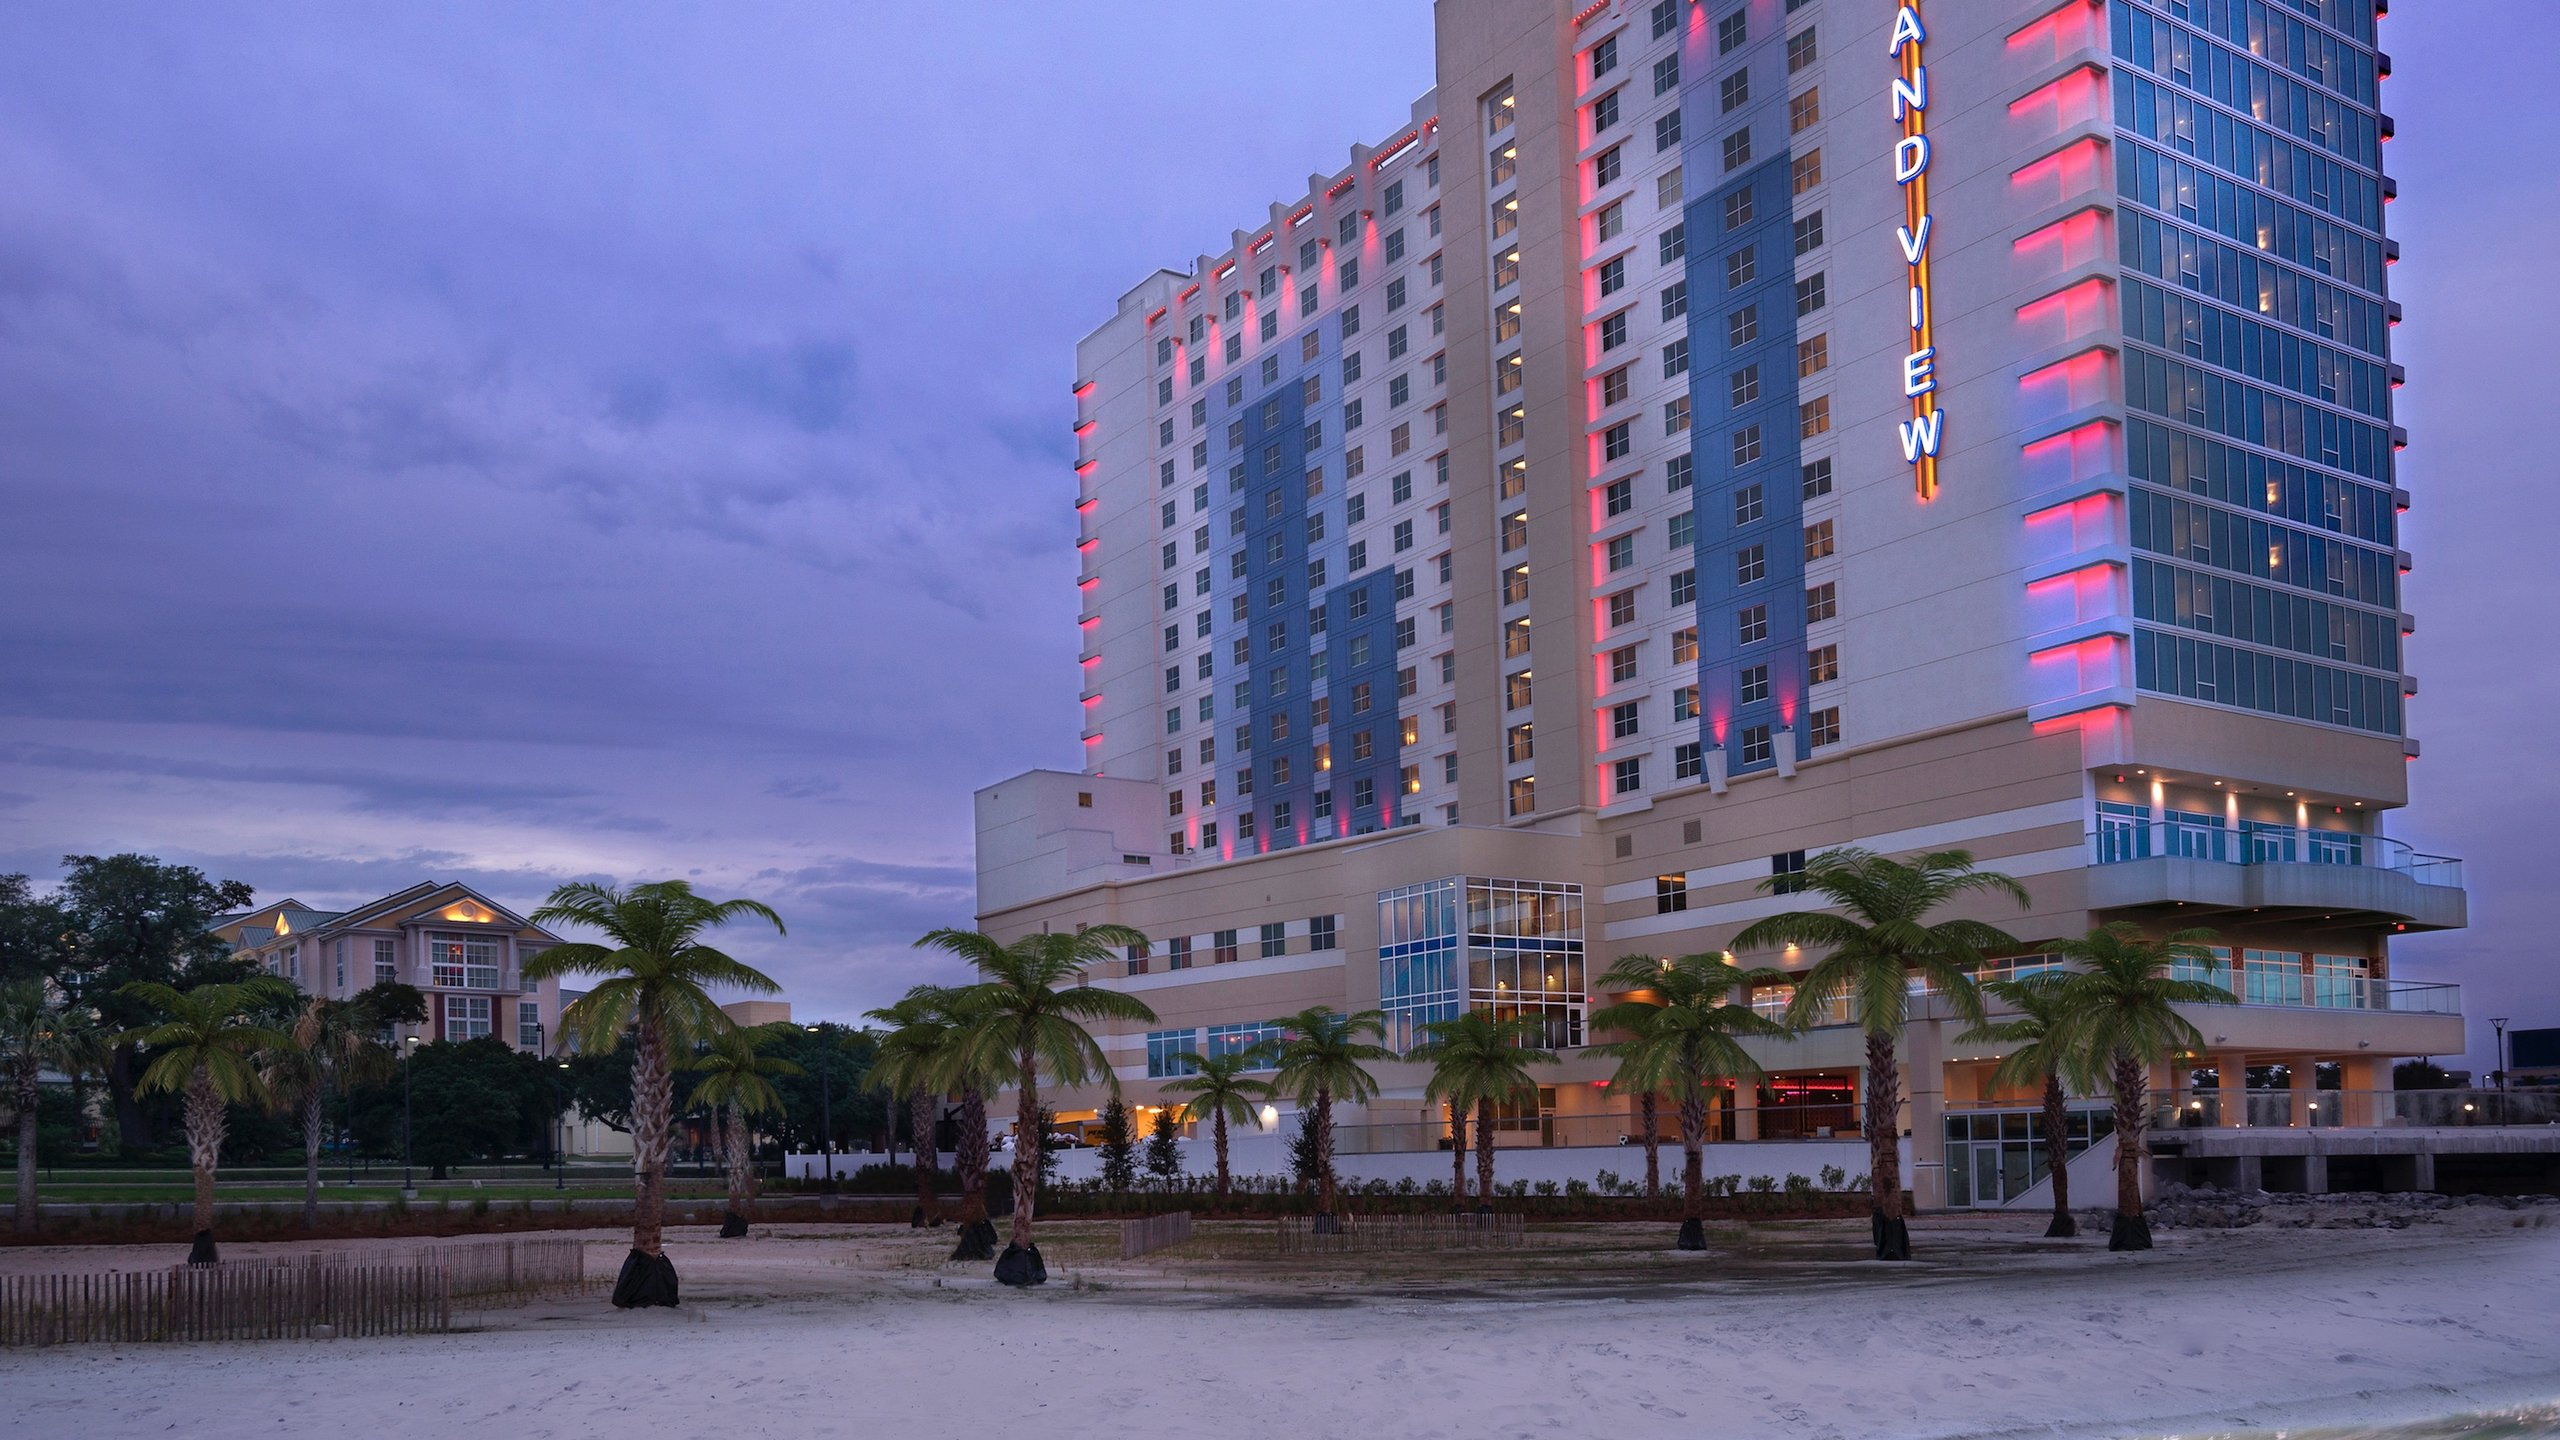 Biloxi Hotels From 50 Cheap Hotel Deals Travelocity